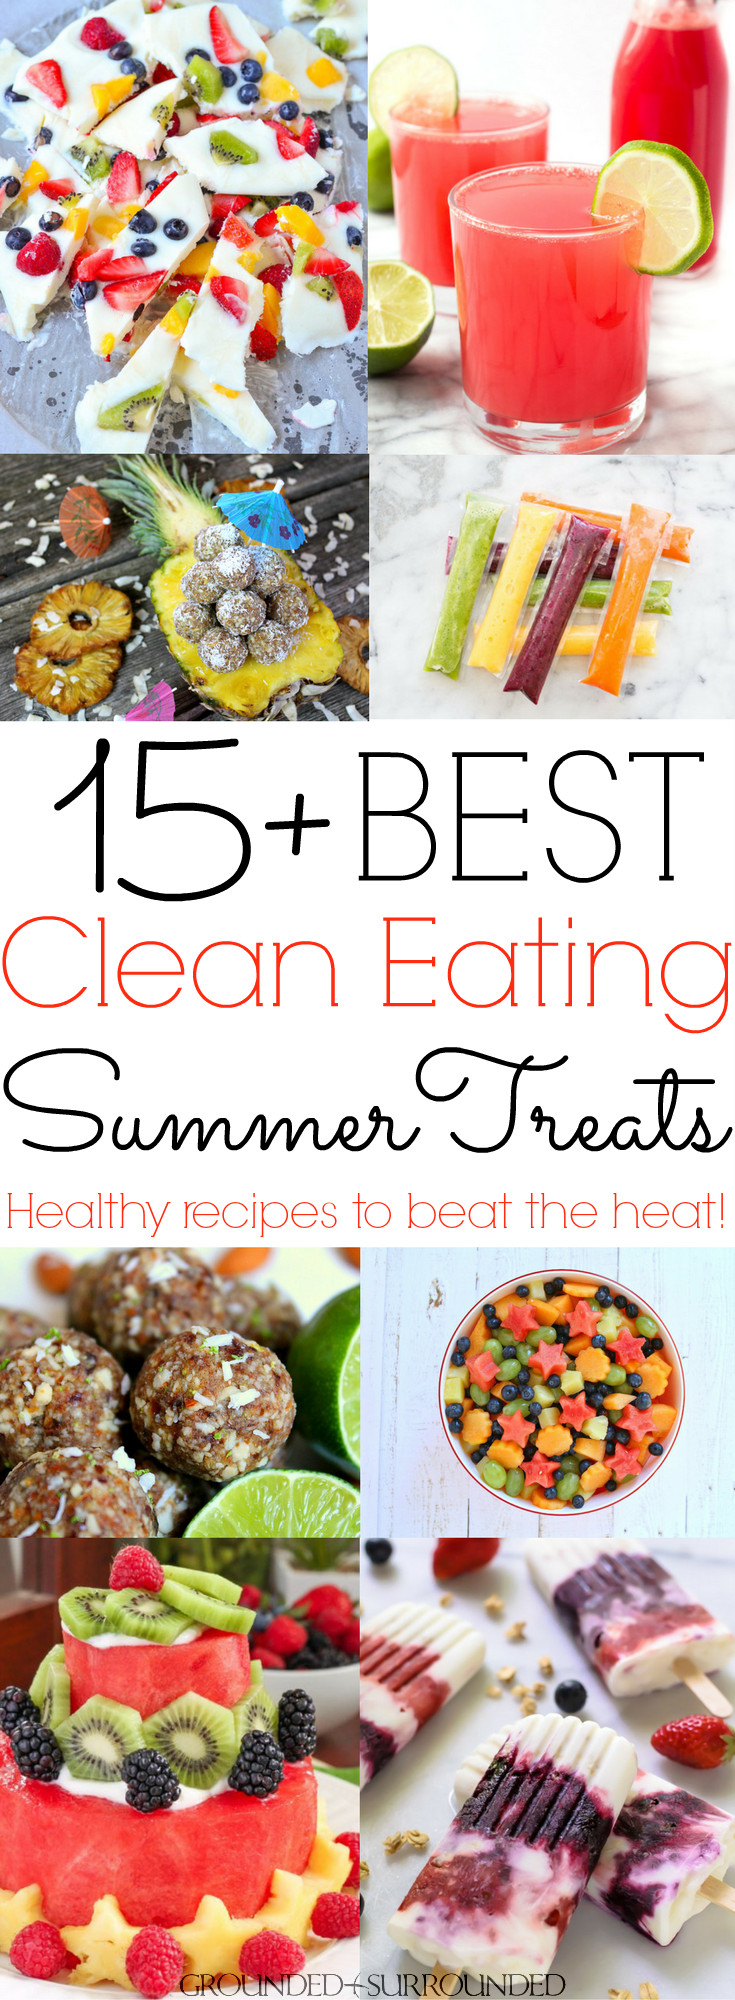 Clean Eating Summer Recipes  15 Best Clean Eating Summer Treats